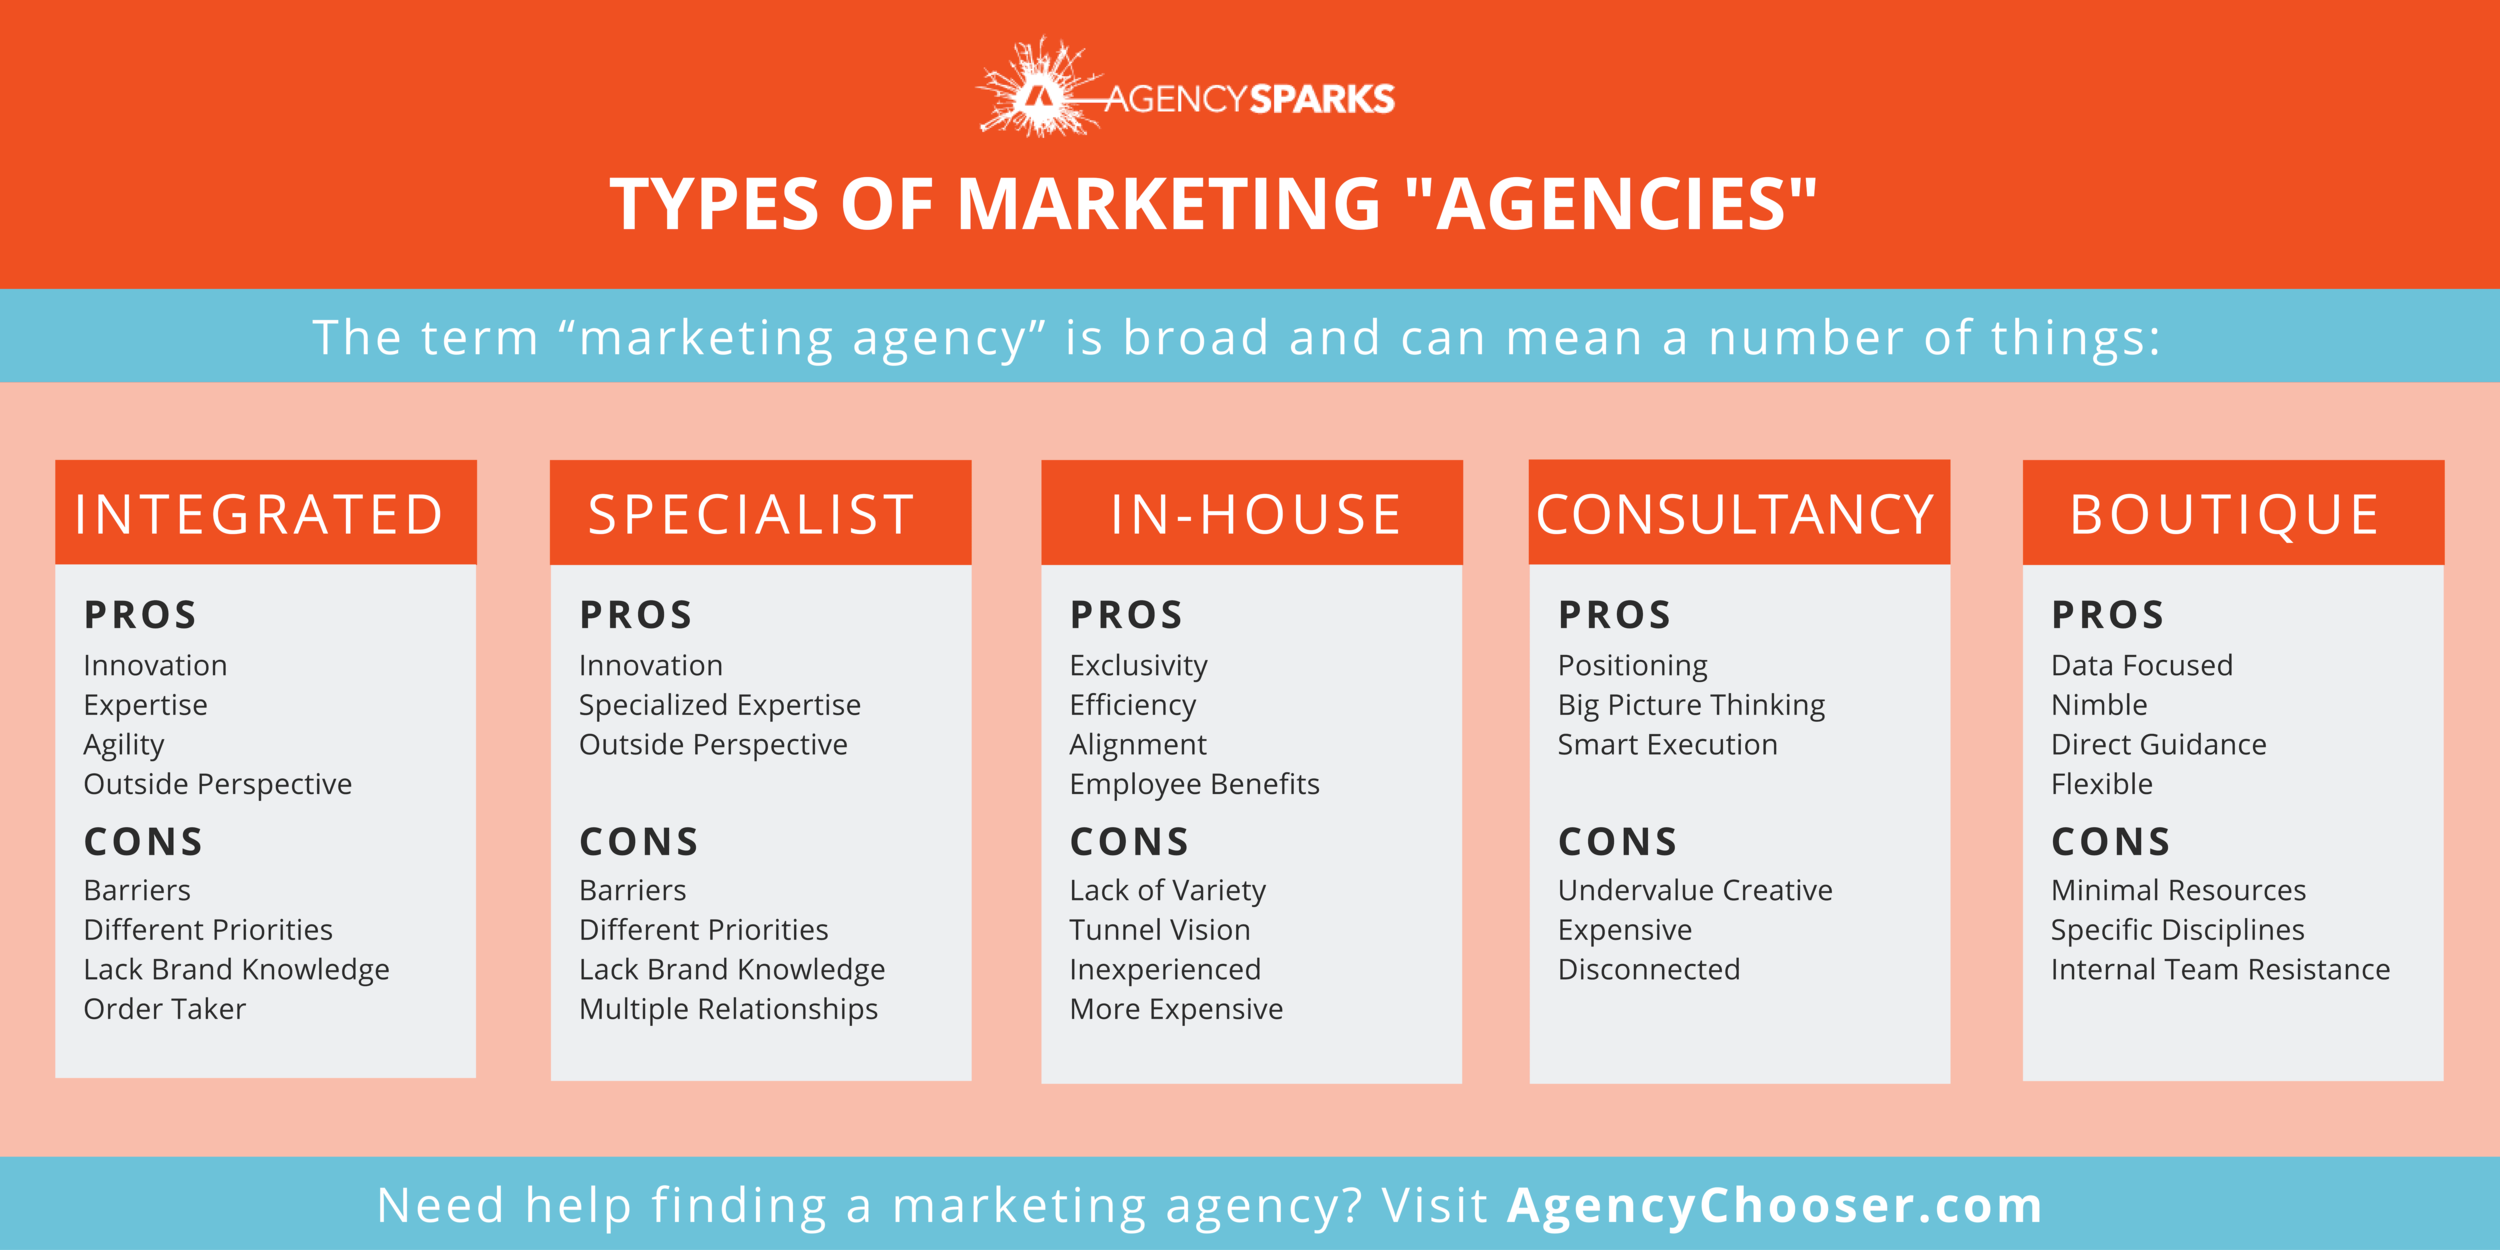 """There are a number of paths a marketing executive can take when determining who and what will guide a marketing strategy. Choosing a marketing agency partner can depend on multiple variables including team capacity, capability, and situation. Though the rapid growth and evolution of marketing has blurred the lines of different """"agency"""" types, it's still helpful to note the key differences between them (Integrated, Specialist, and In-house marketing agencies and boutique/large consulting firms)."""